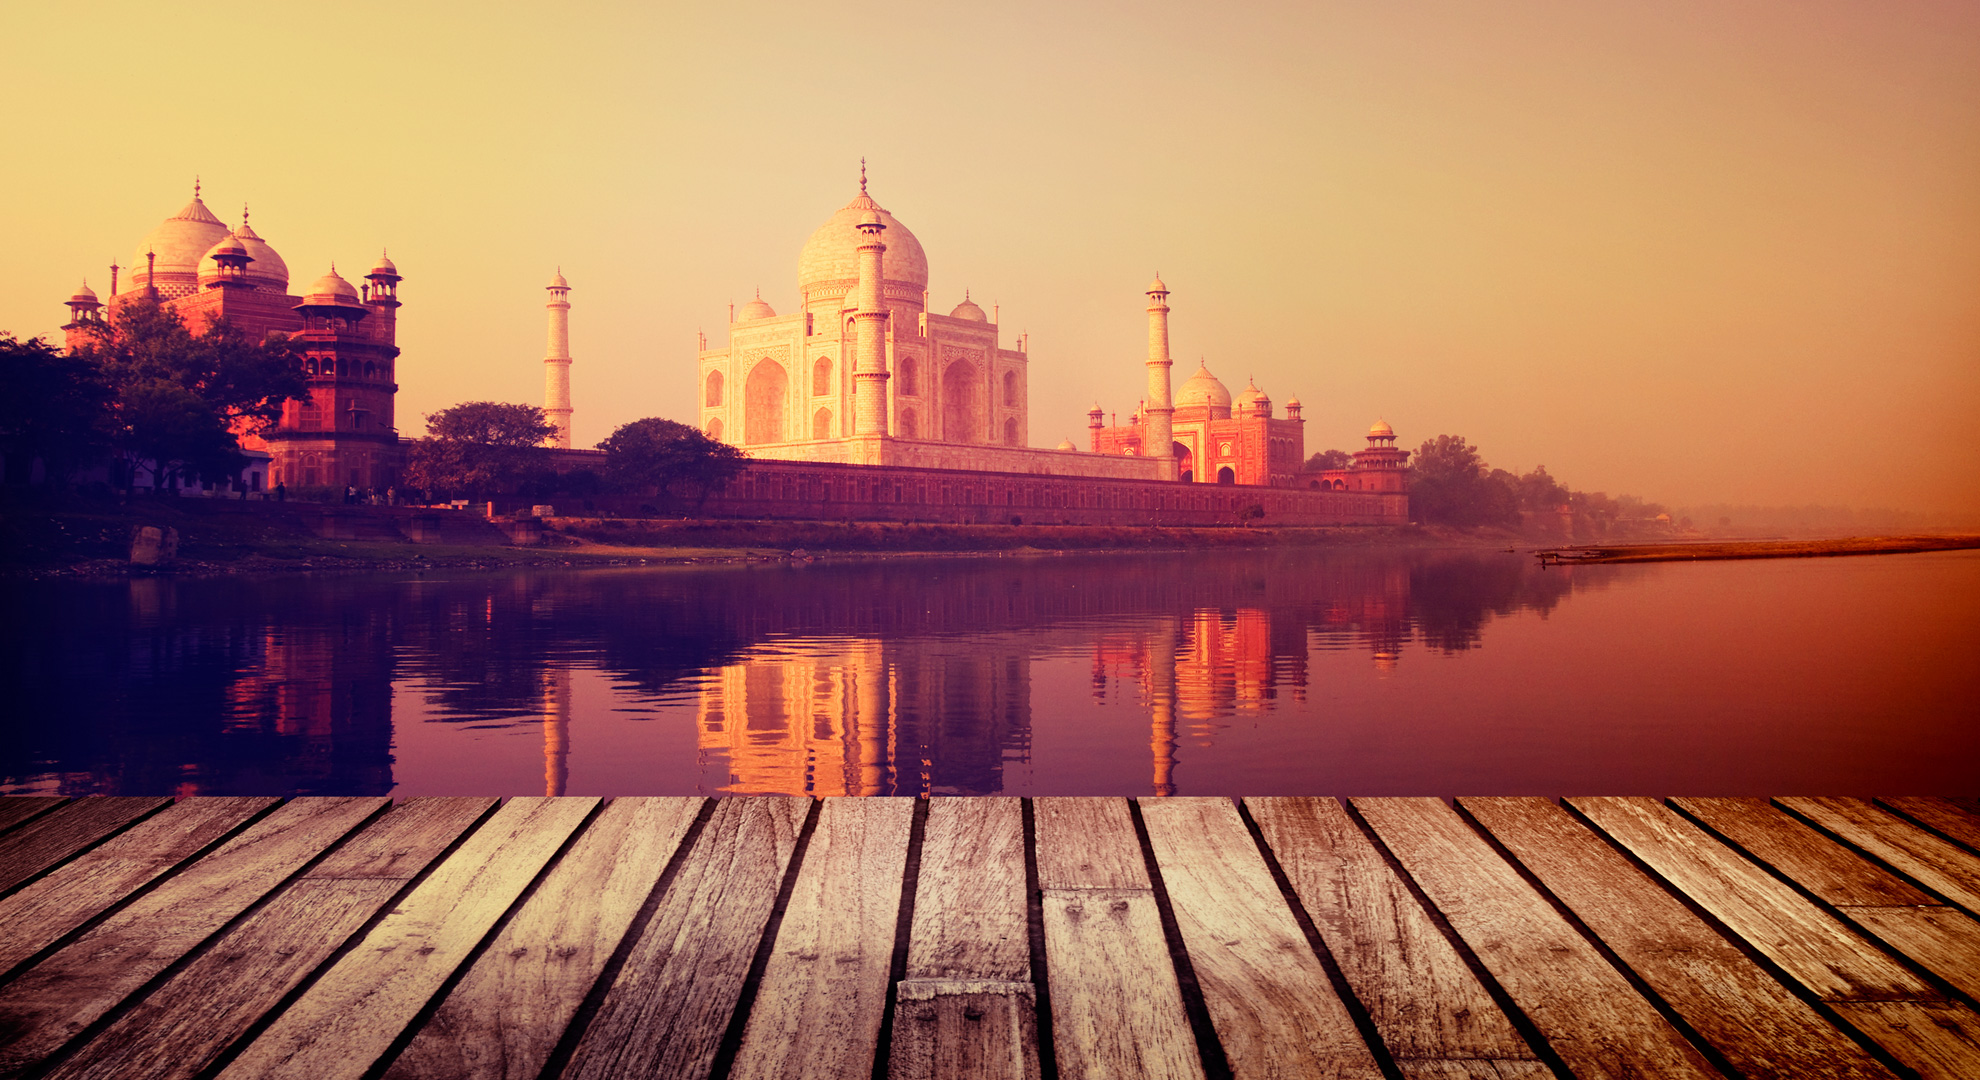 taj-mahal-sunrise-tour-by-car-from-delhi